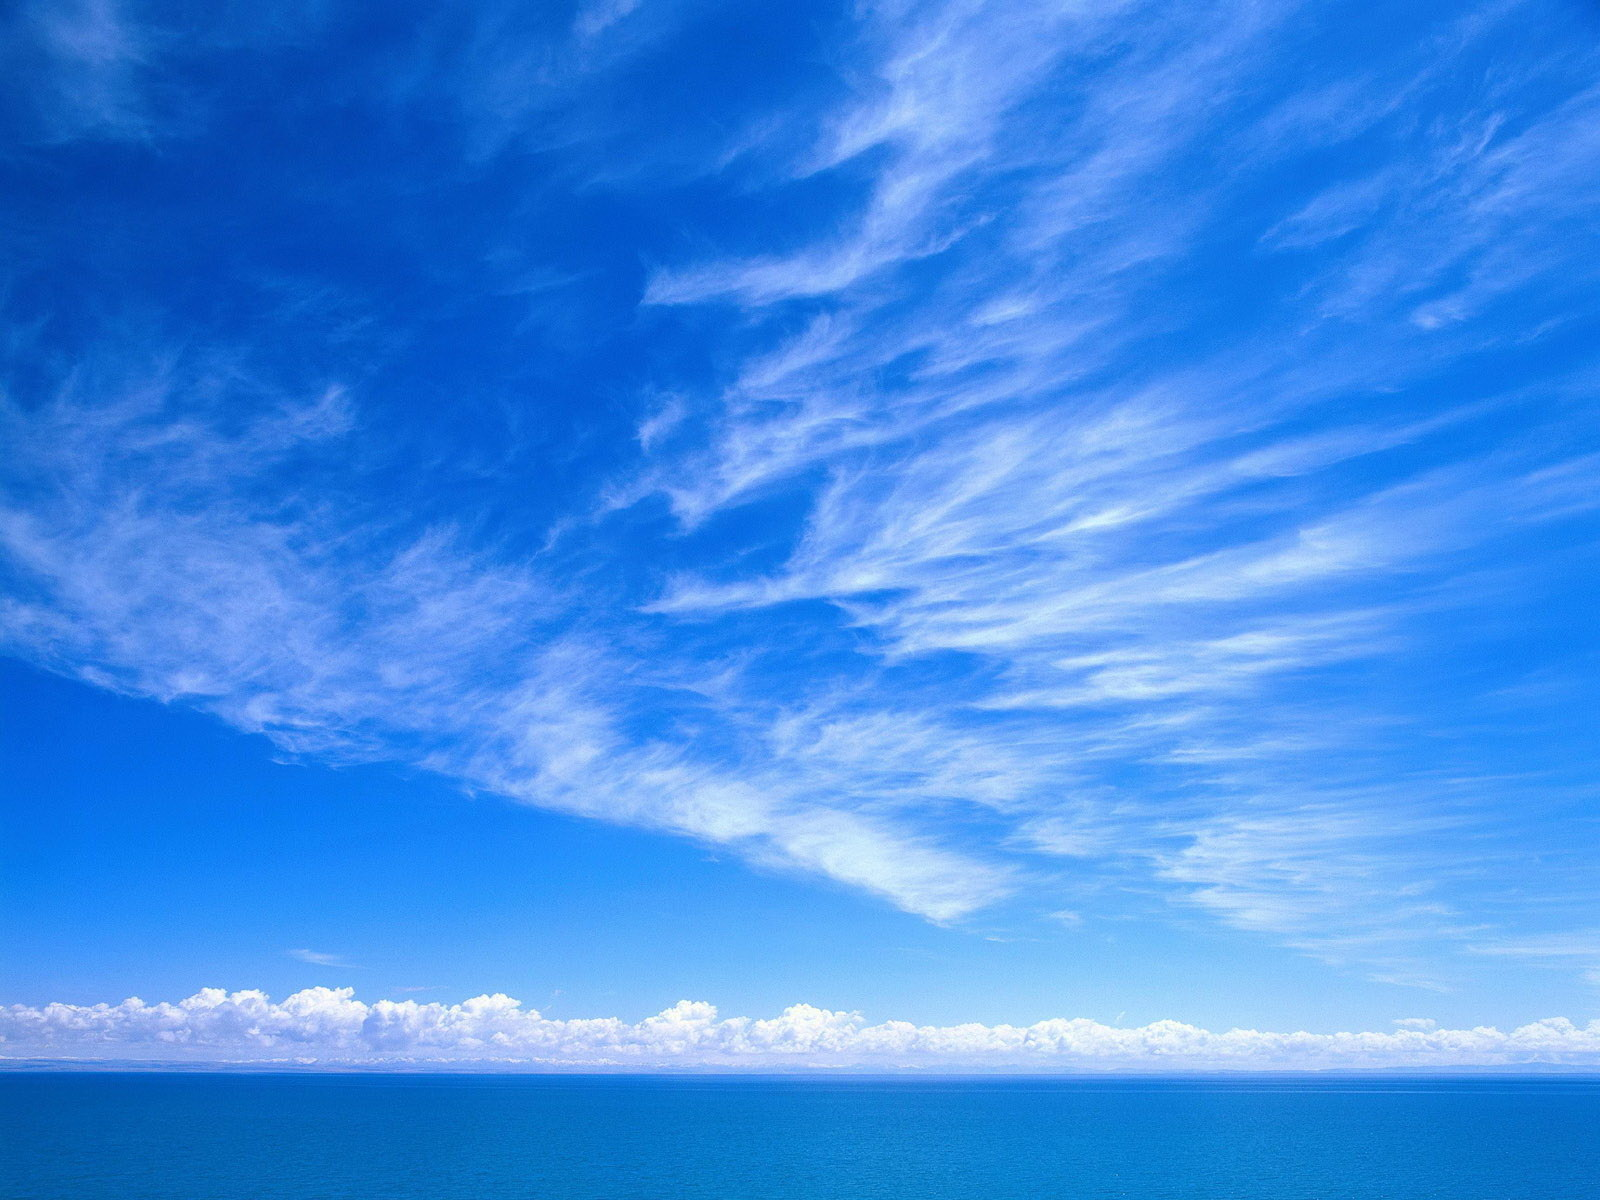 Wallpaper sky, blue sky, clouds, sea, clear, simple desktop ...